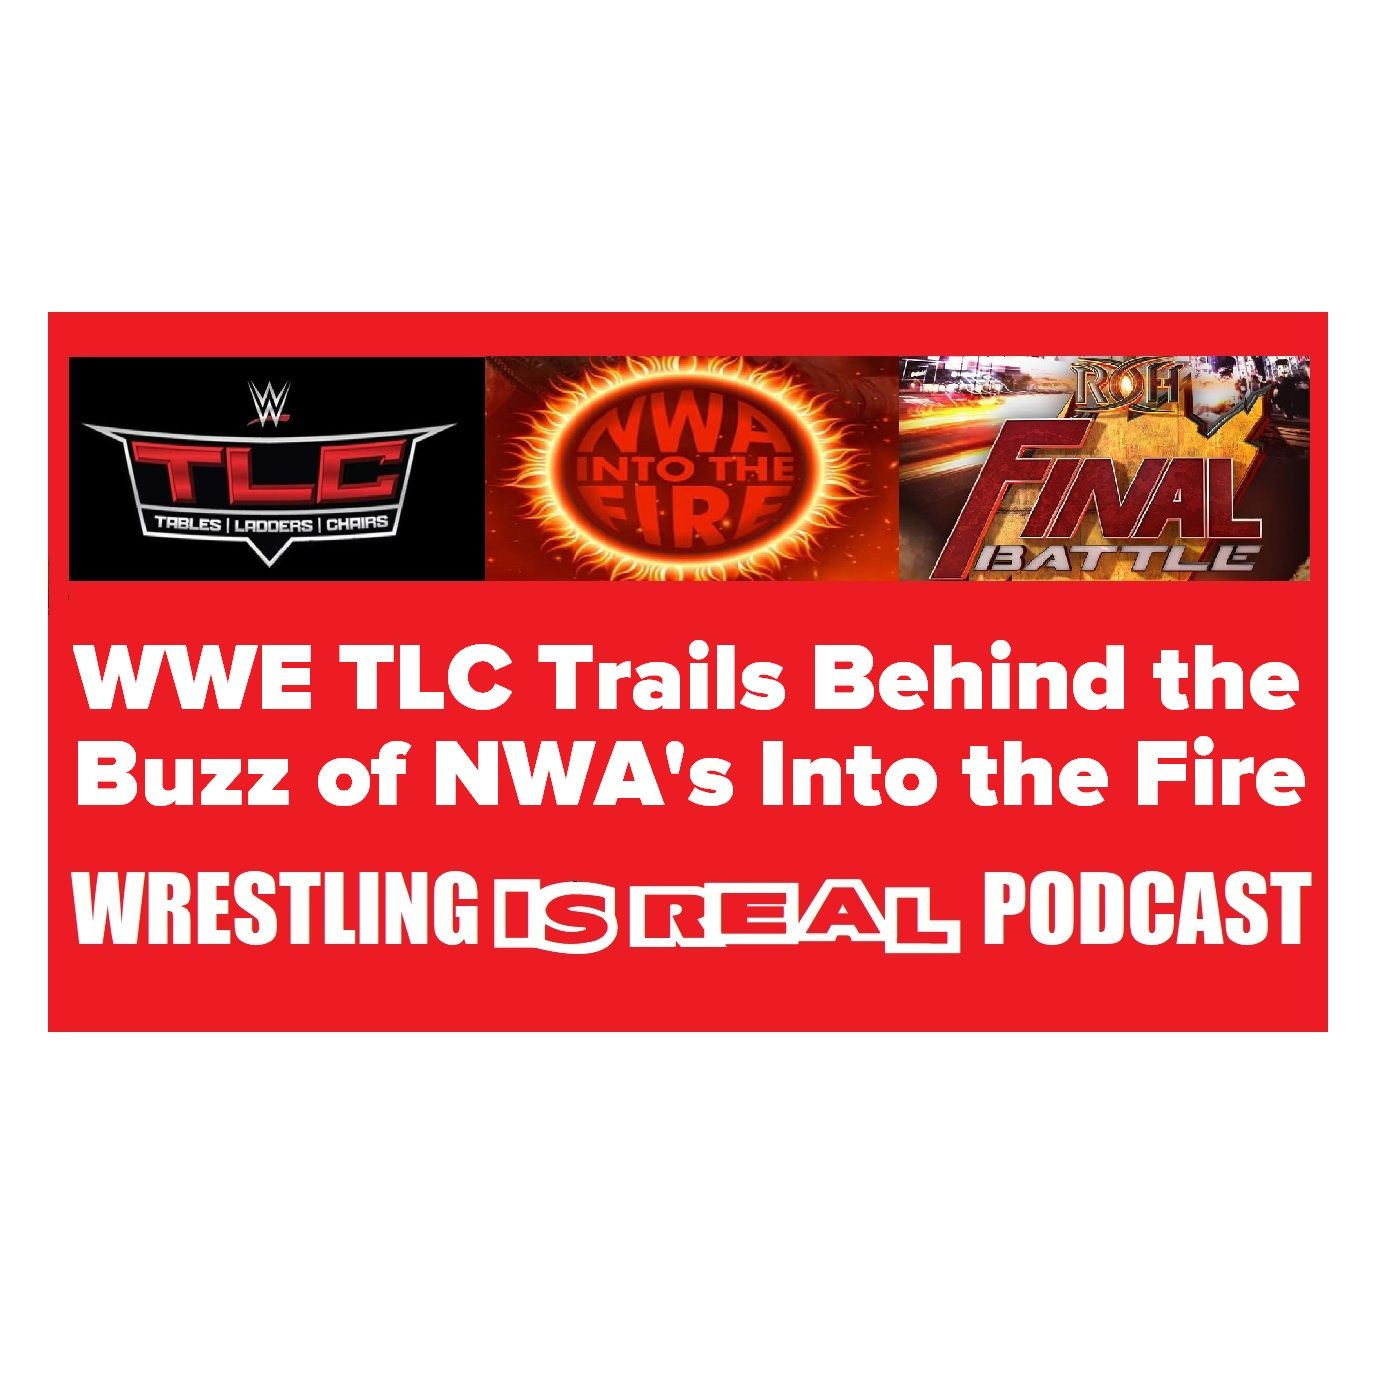 WWE TLC Trails Behind the Buzz of NWA's Into the Fire KOP121219-502